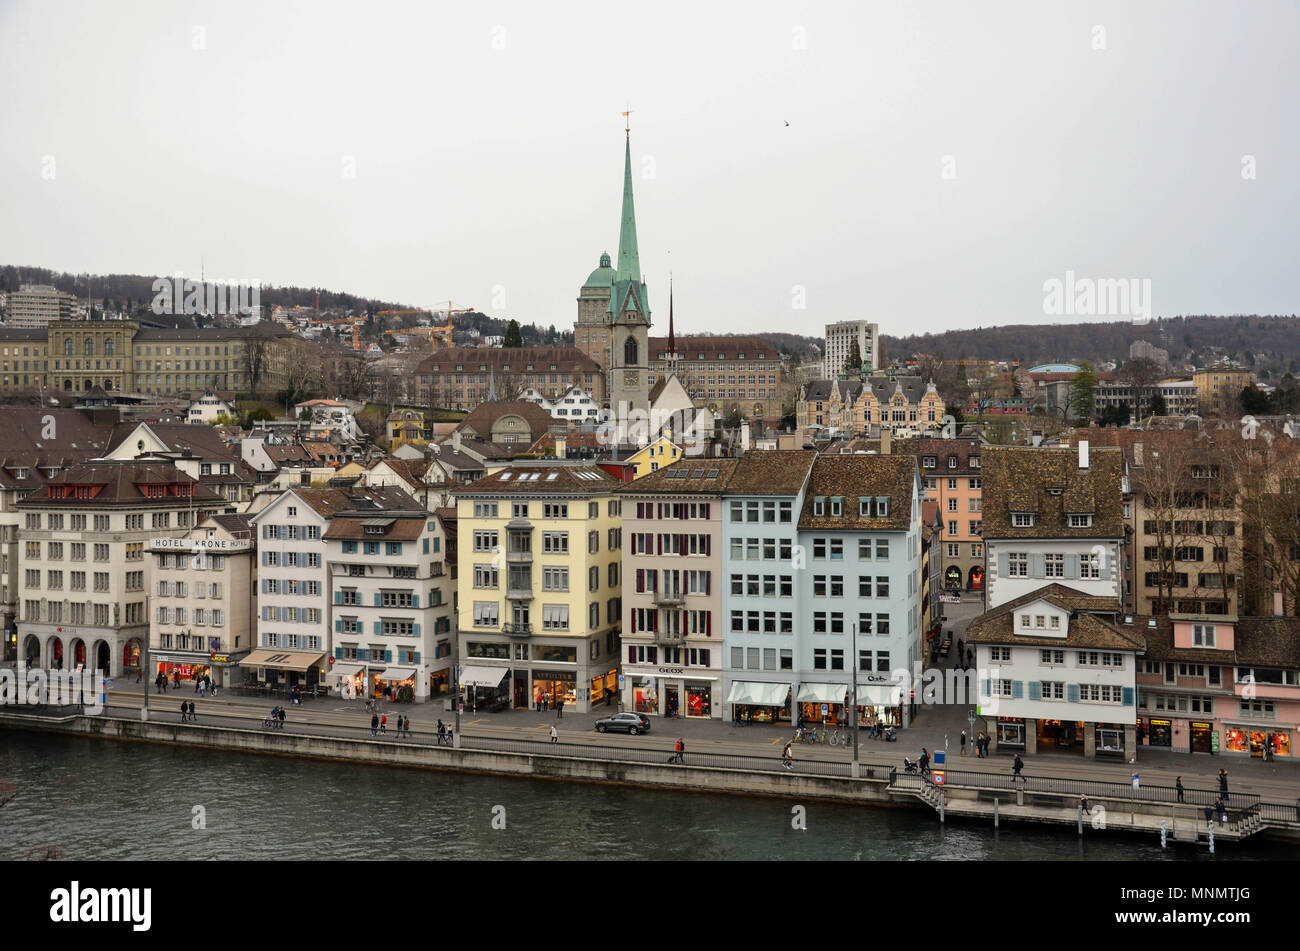 Central Zurich and the Limmat riverfront from the Lindenhof hill observation point, Zurich, Switzerland, January 2018 - Stock Image